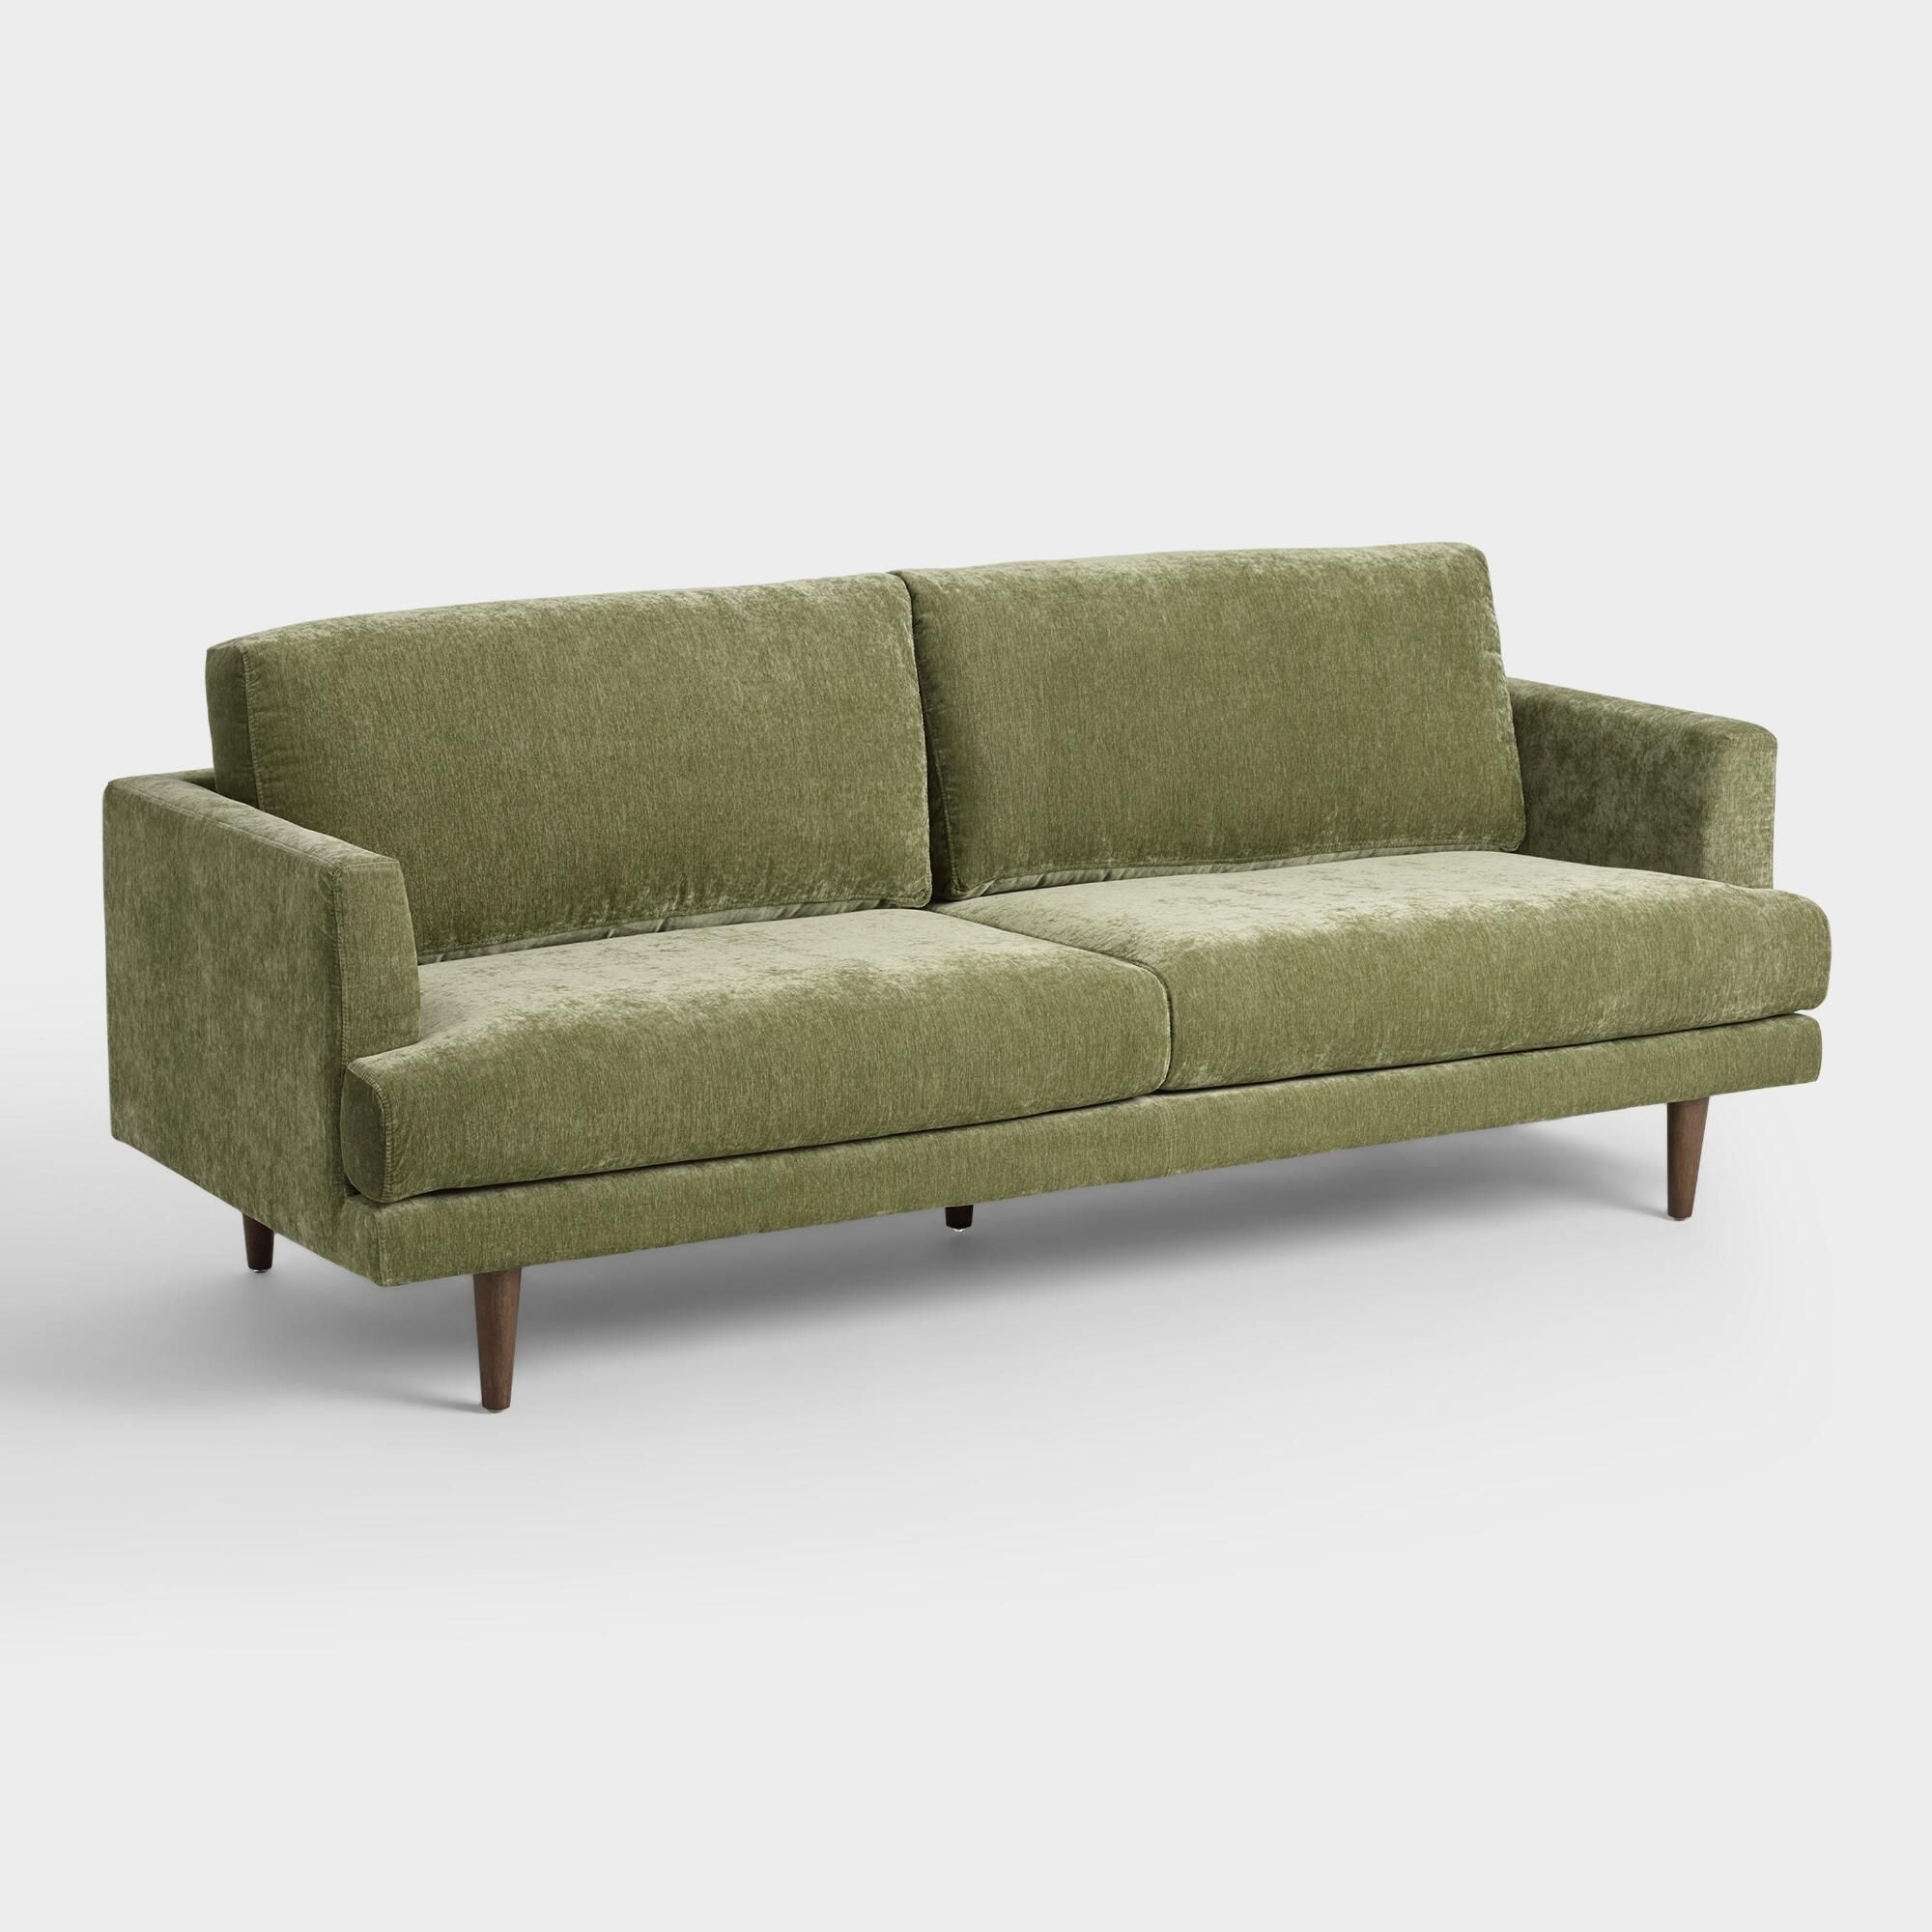 Cool Sage Green Helena Sofa Fabric By World Market In 2019 Cjindustries Chair Design For Home Cjindustriesco